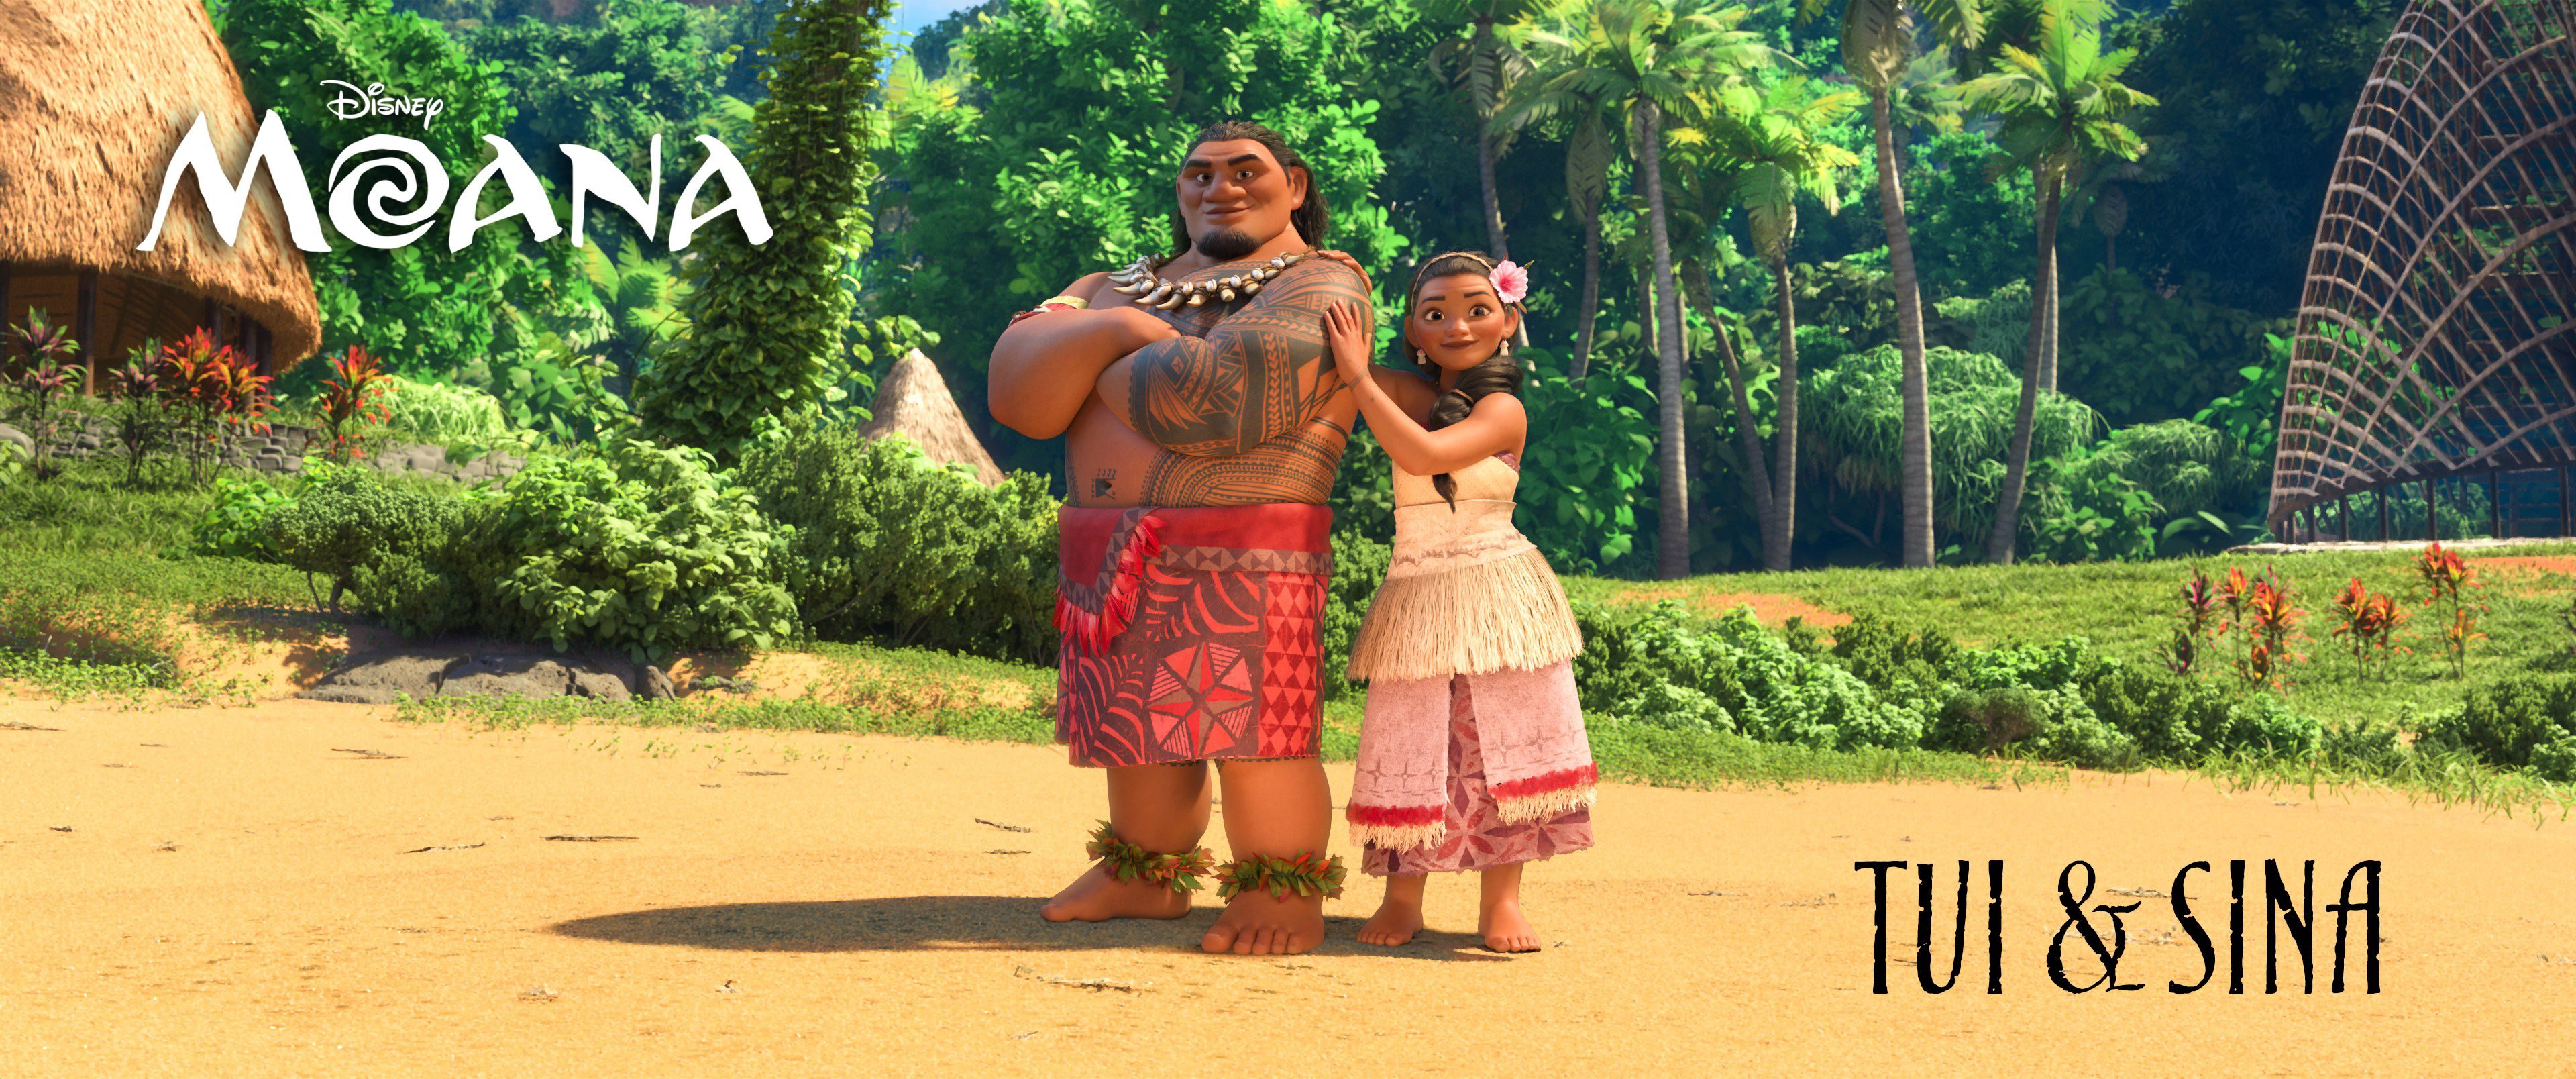 Moana Cast And Characters Revealed In New Colorful Images Collider